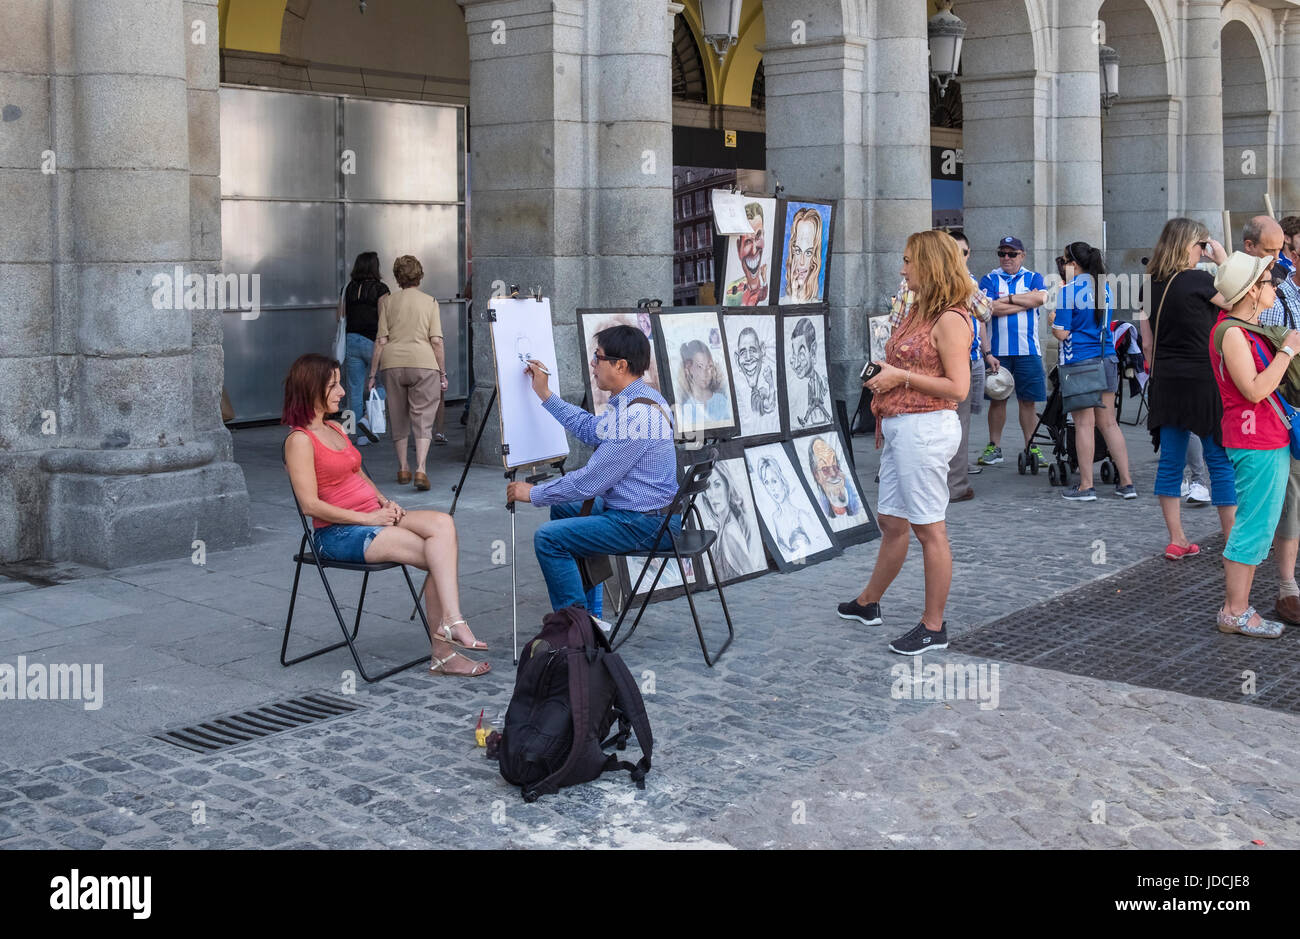 Street artist doing cartoon portrait caricatures for tourists, Plaza Major, Madrid, Spain - Stock Image